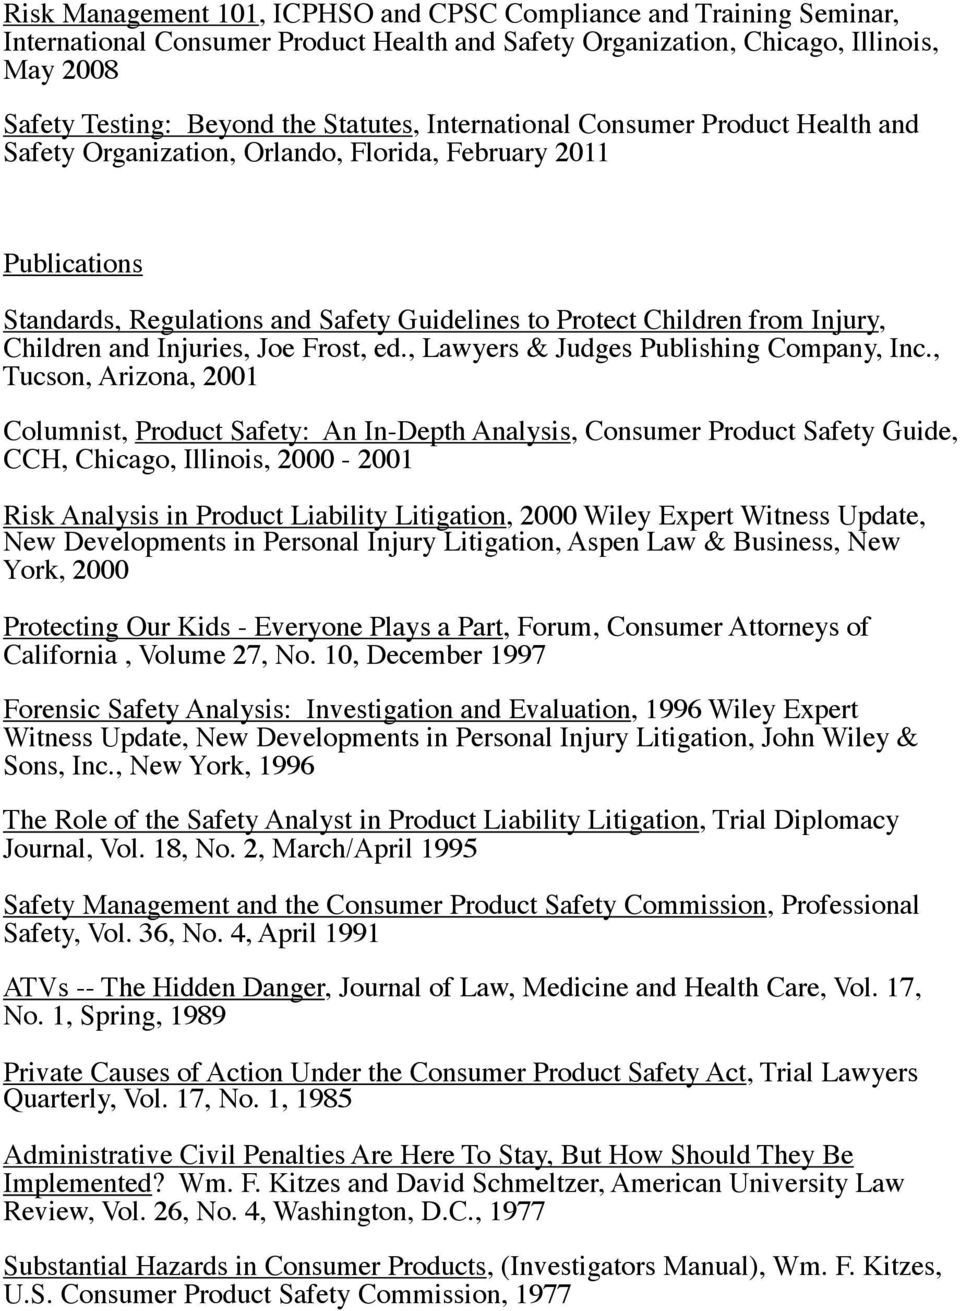 Je Frst, ed., Lawyers & Judges Publishing Cmpany, Inc.